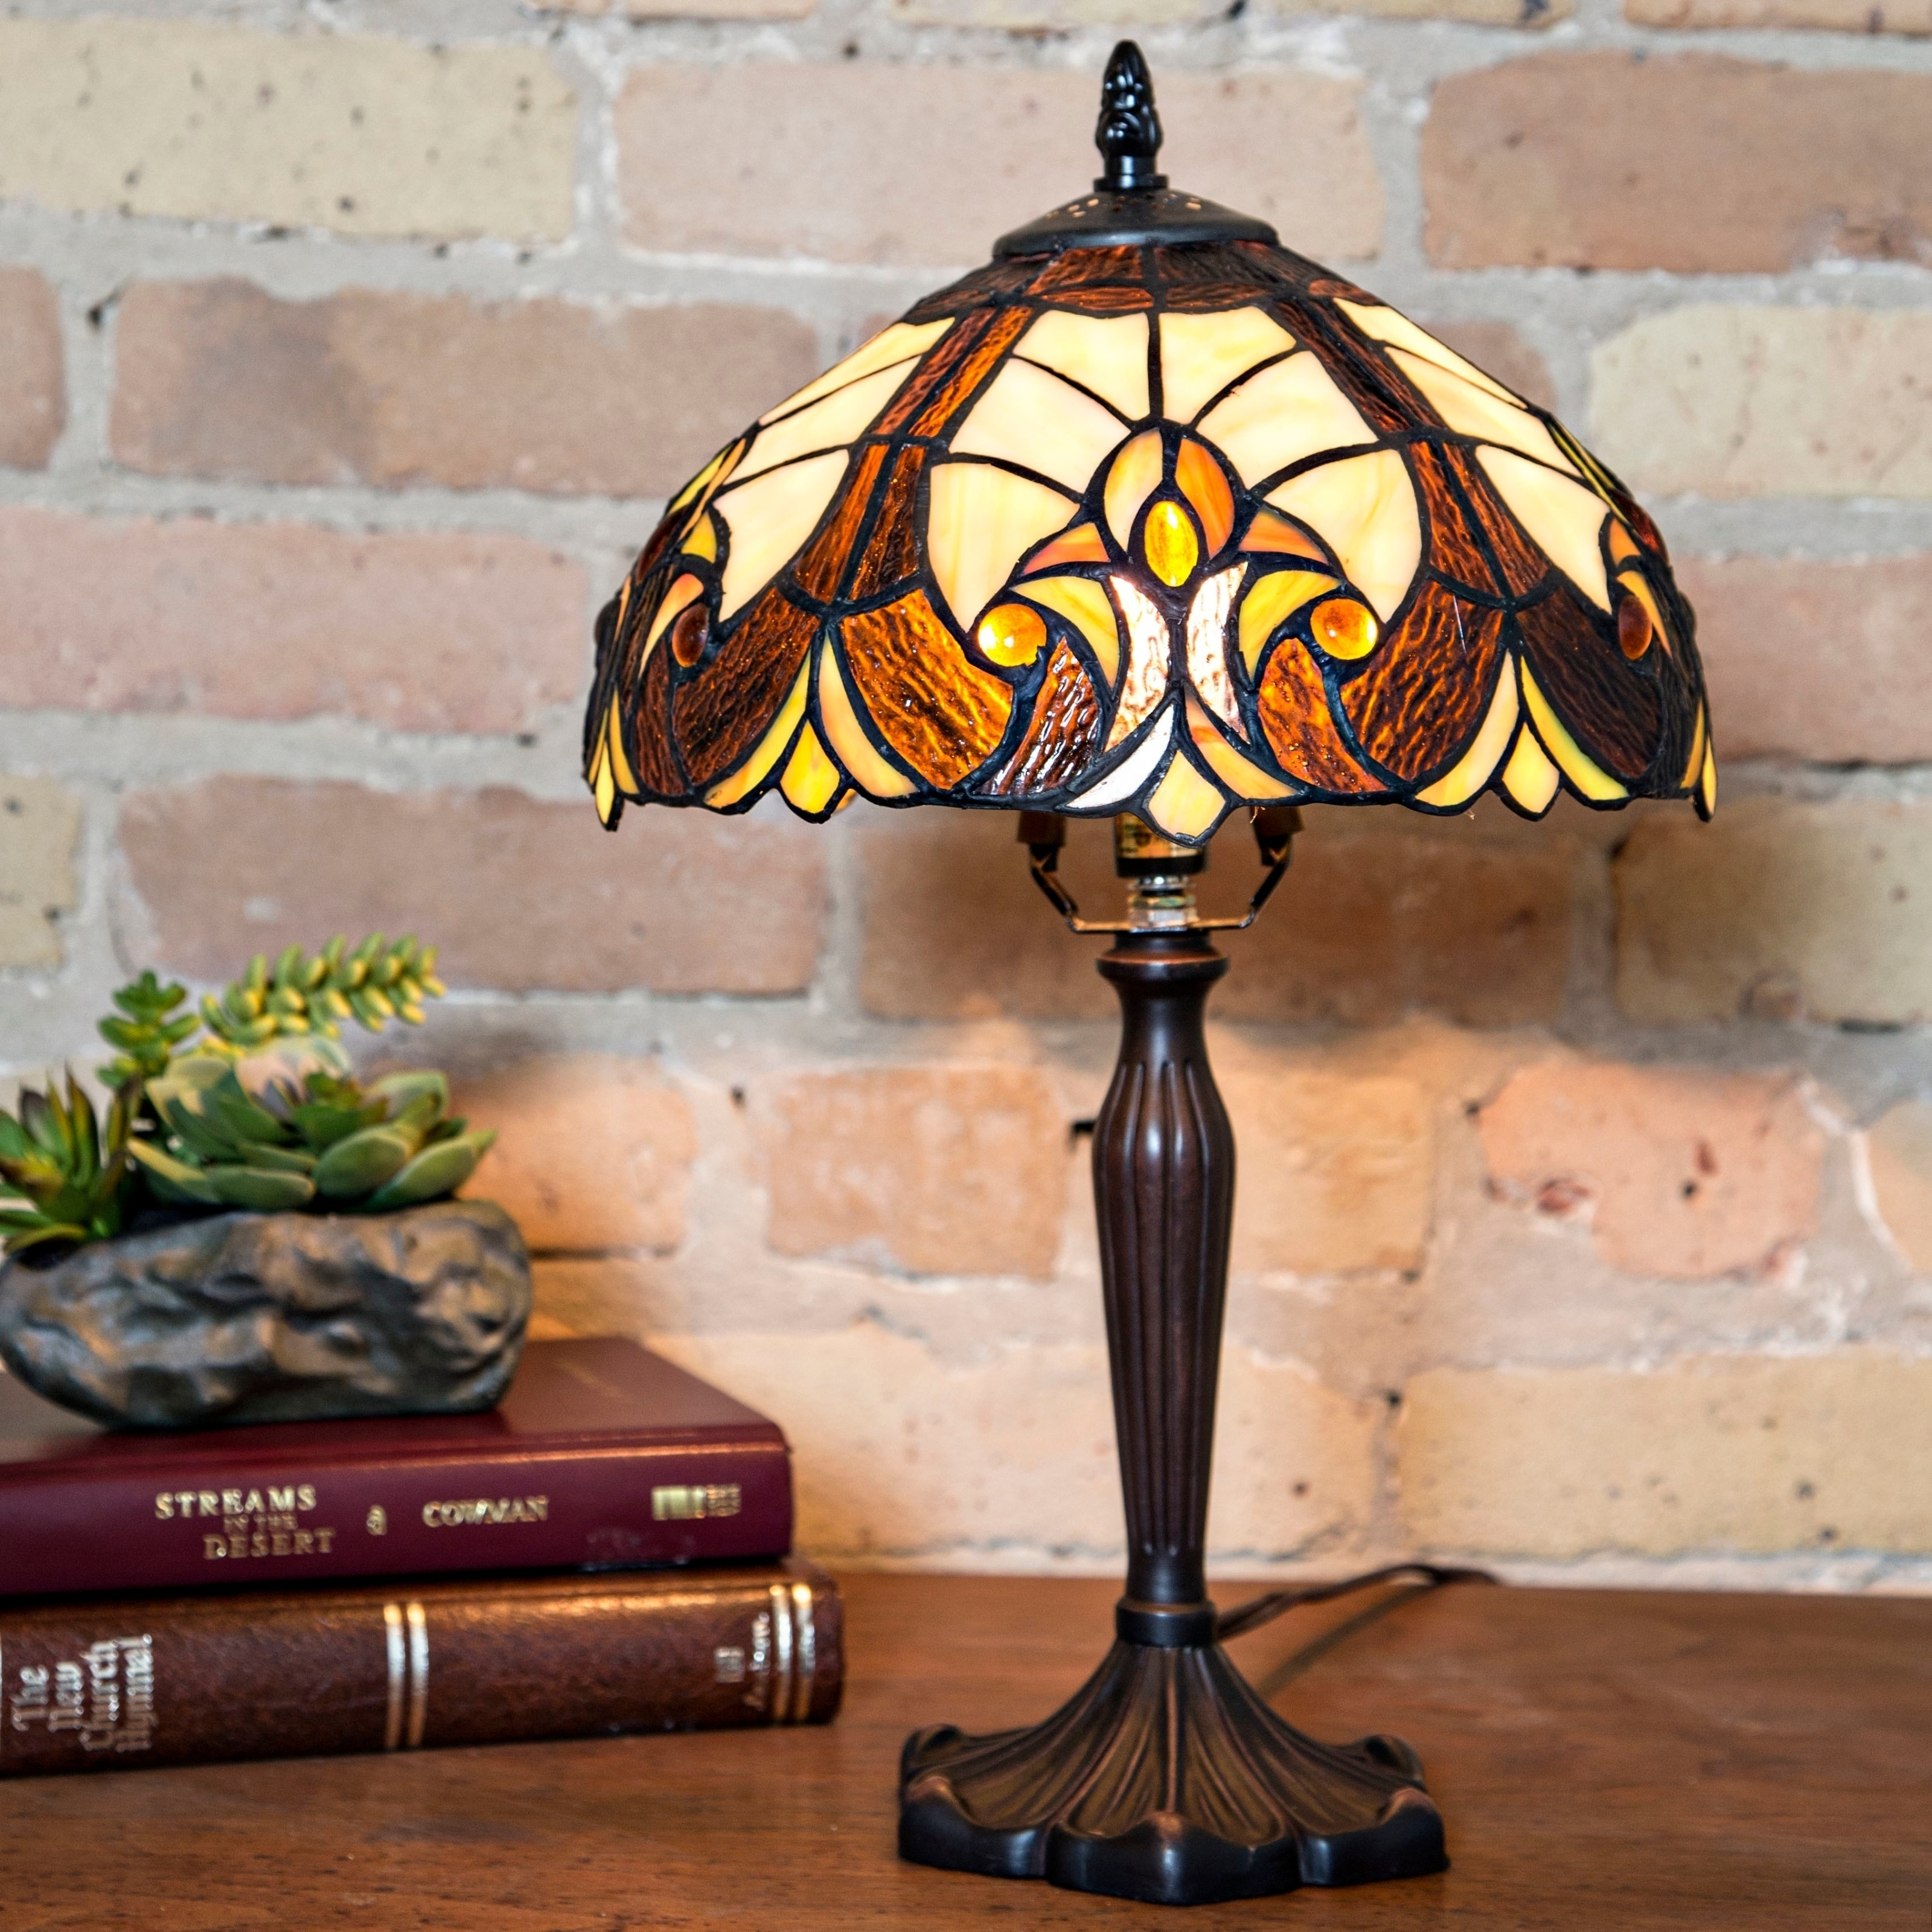 Shop copper grove carnach 16 inch high stained glass table lamp on sale free shipping today overstock com 23543998